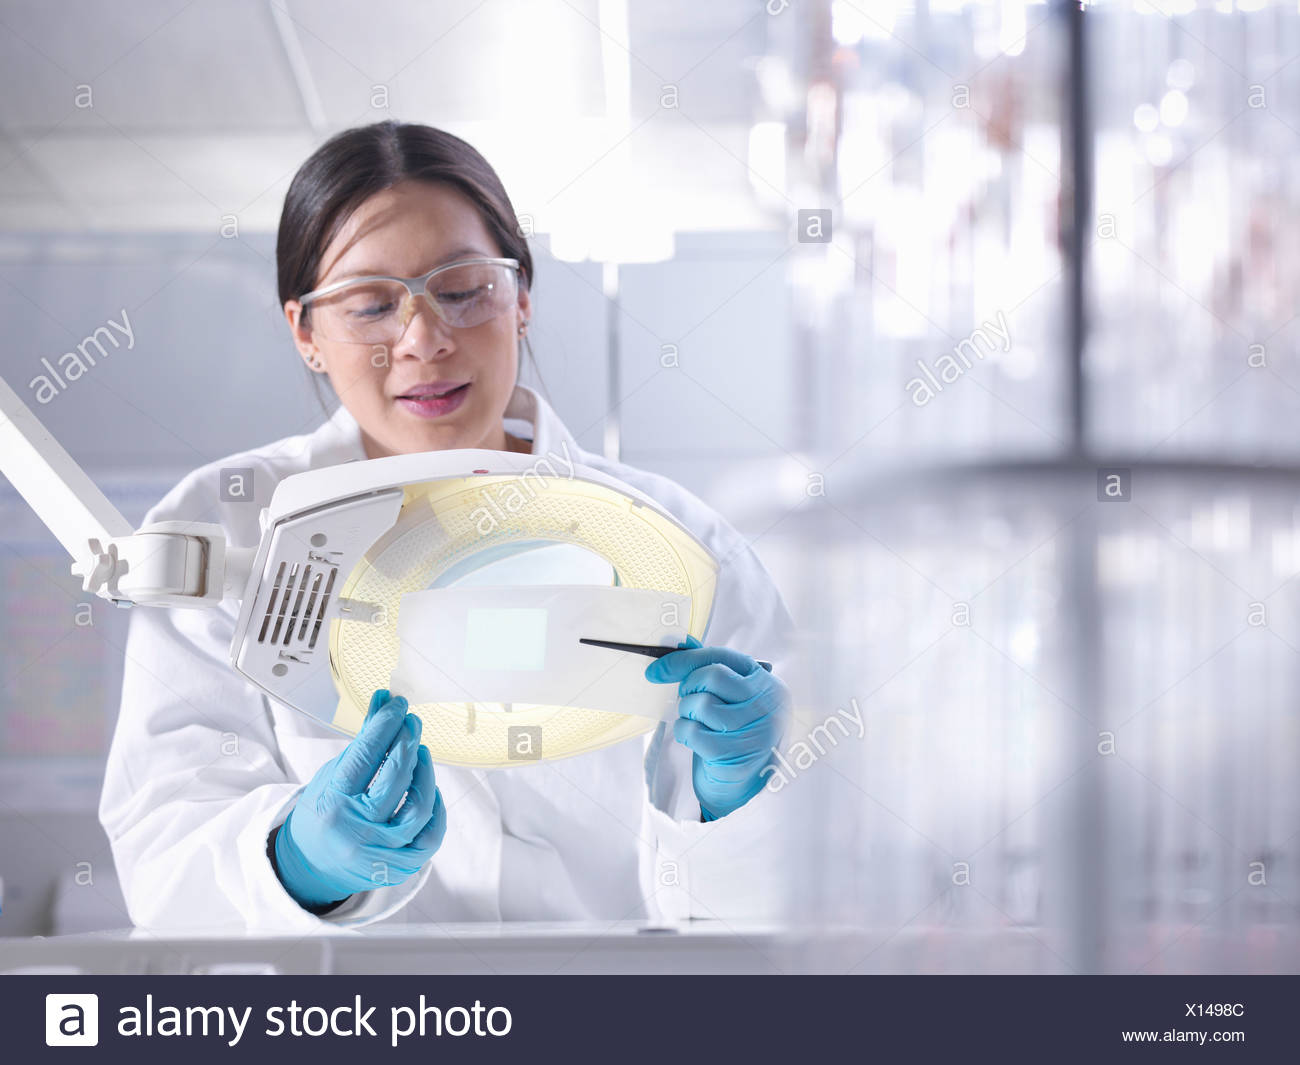 Scientist inspects product in laboratory - Stock Image